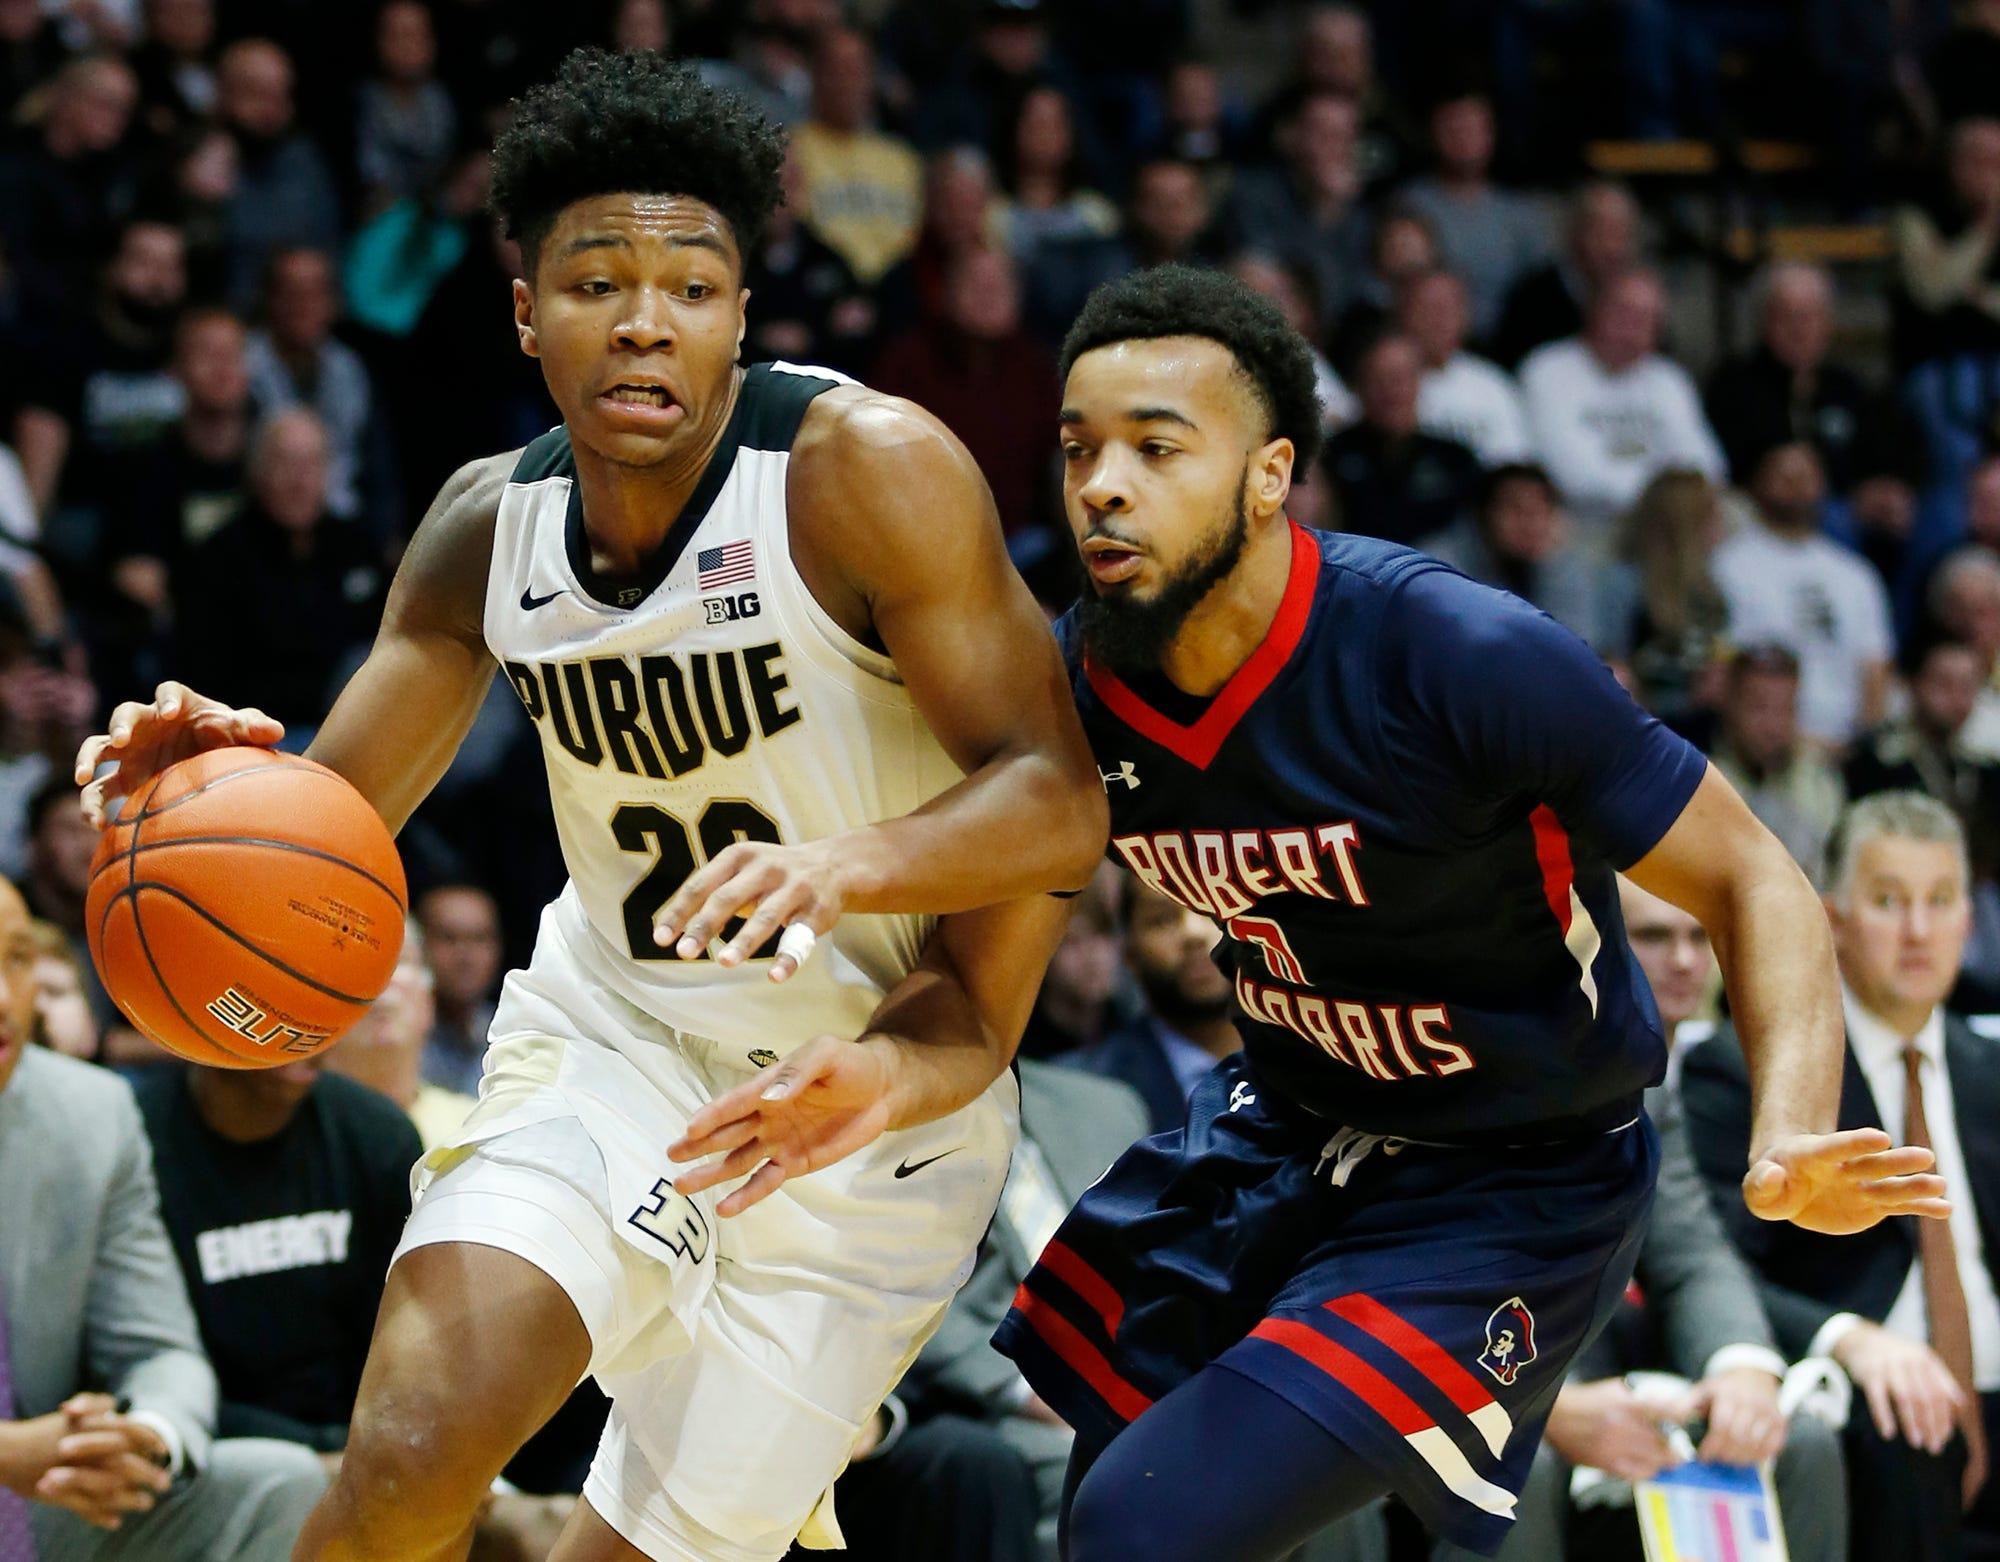 Nojel Eastern of Purdue drives the baseline against Josh Williams of Robert Morris Friday, November 23, 2018, at Mackey Arena. Purdue defeated Robert Morris 84-46.